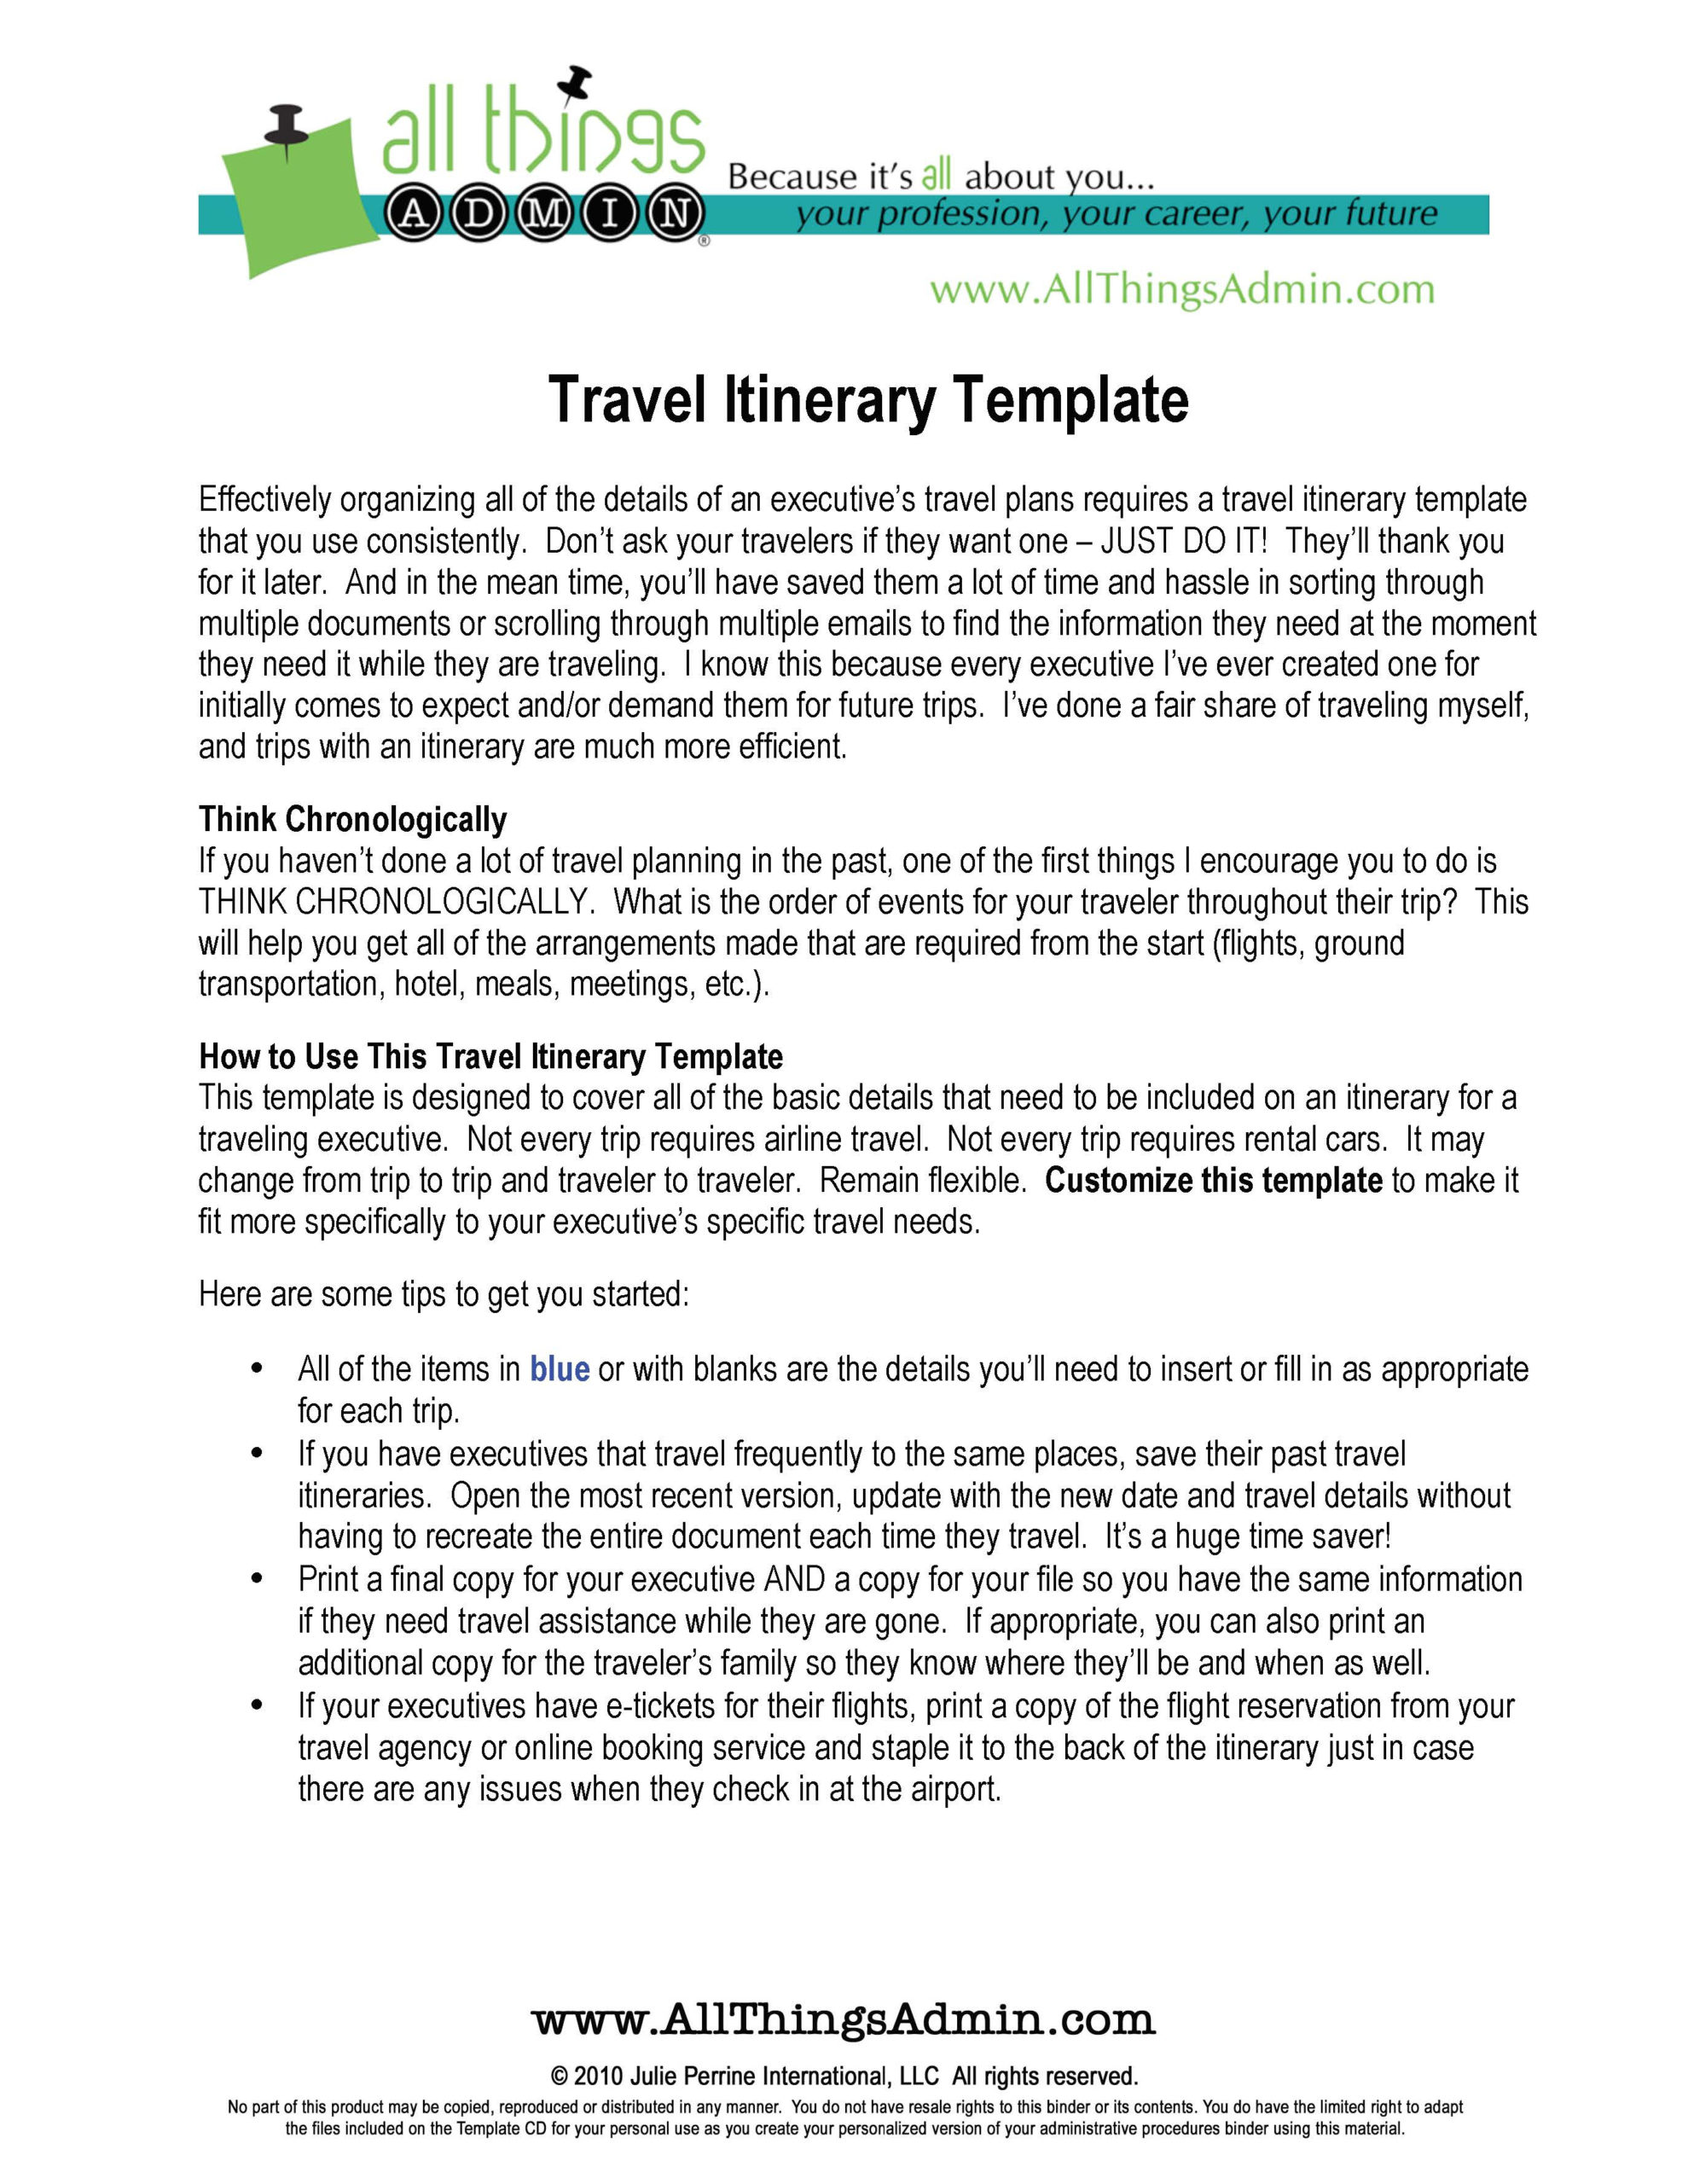 Basic Flight Itinerary Template  Pdf Format  Edatabase throughout Executive Assistant Travel Itinerary Template